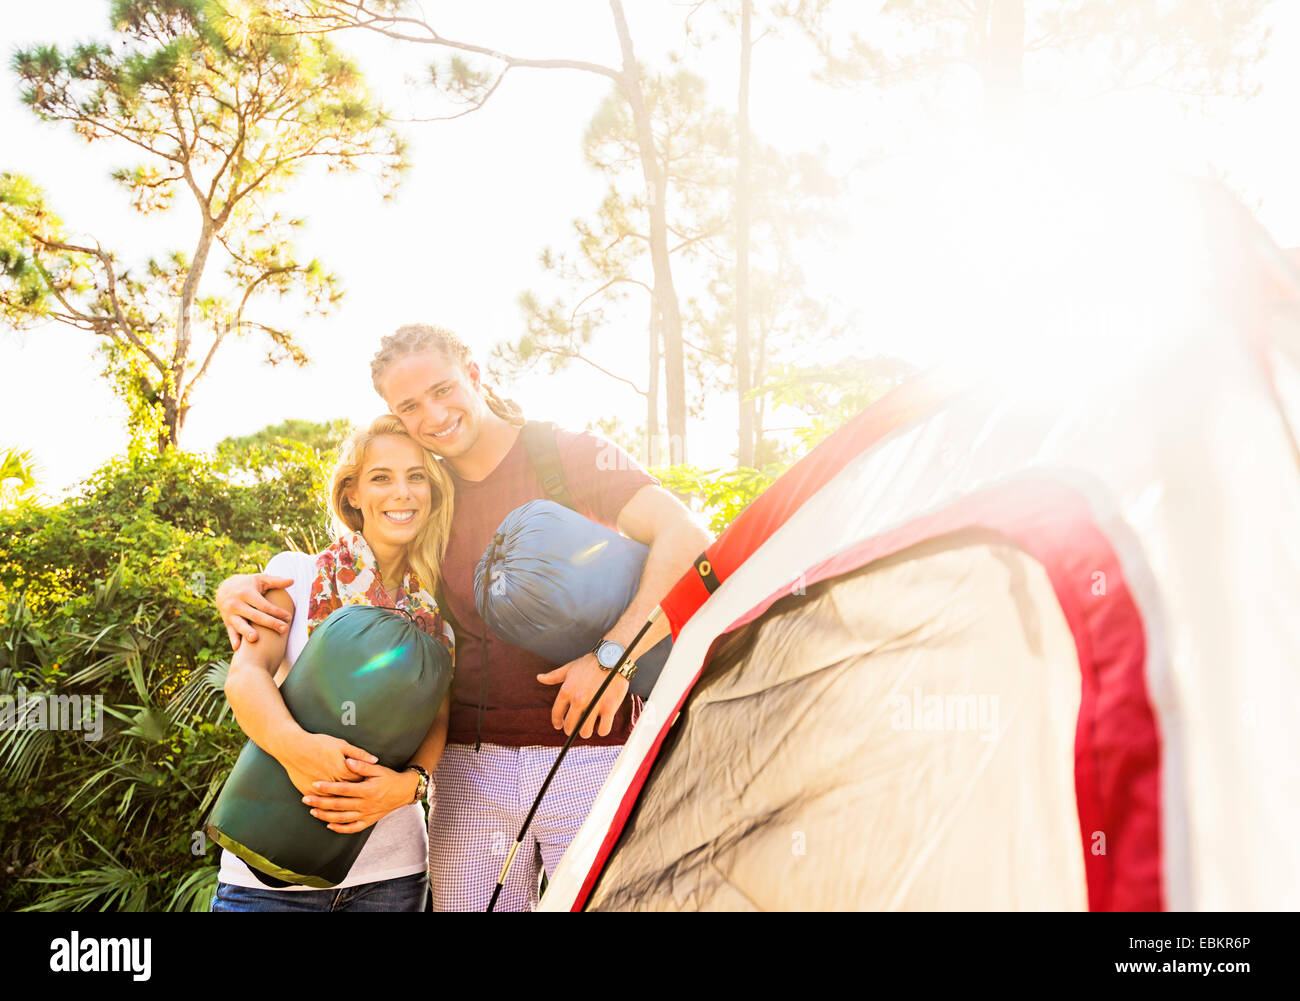 USA, Florida, Tequesta, Portrait of smiling couple standing together next to tent Stock Photo